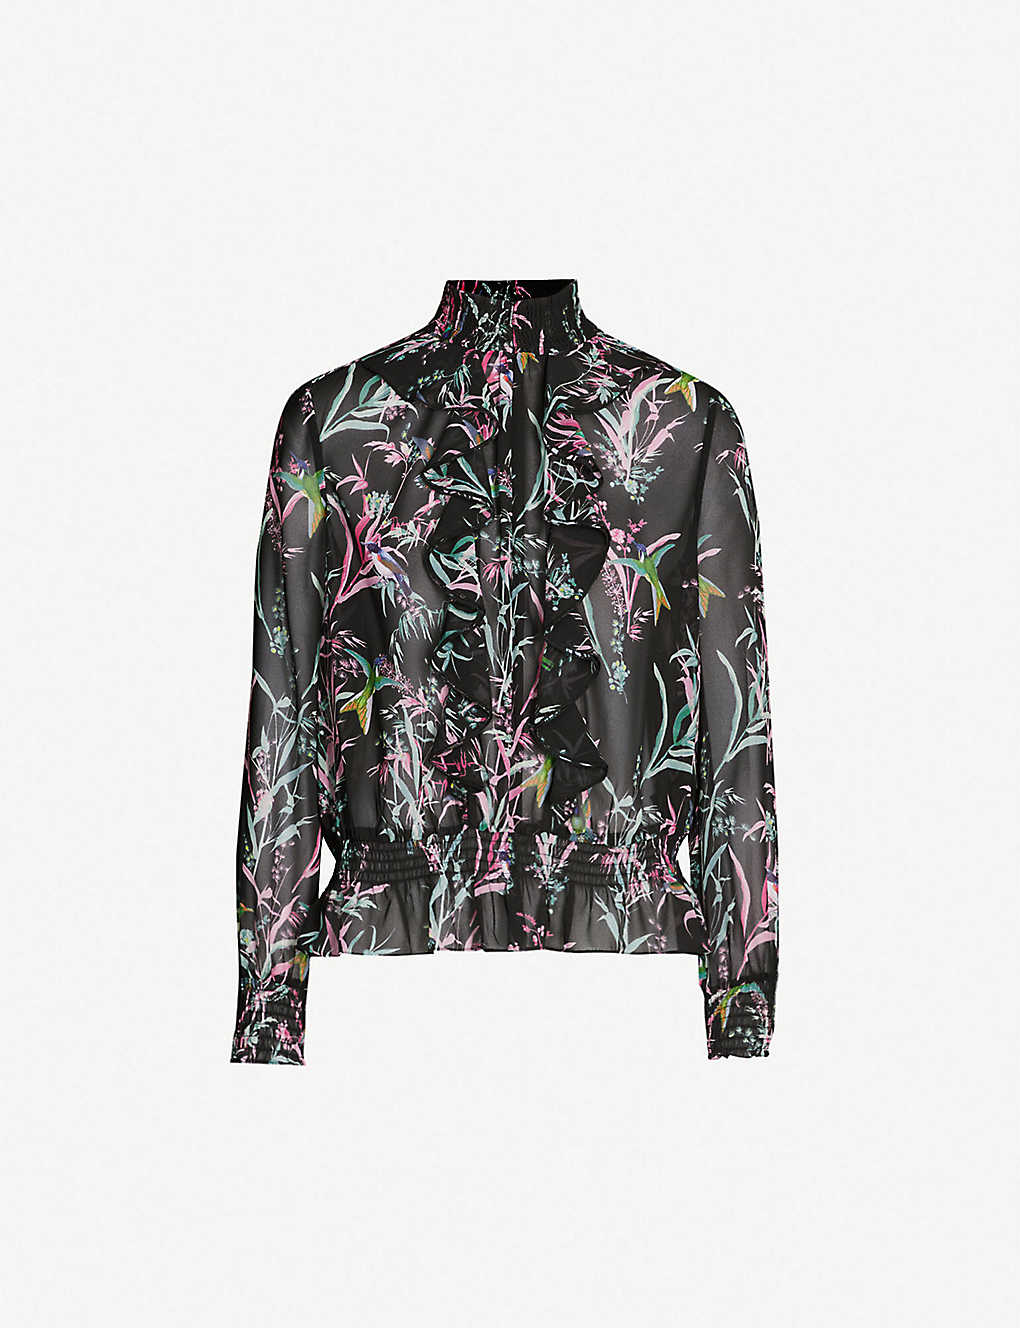 253a7ae5 TED BAKER - Calio fortune-print ruffled chiffon top | Selfridges.com